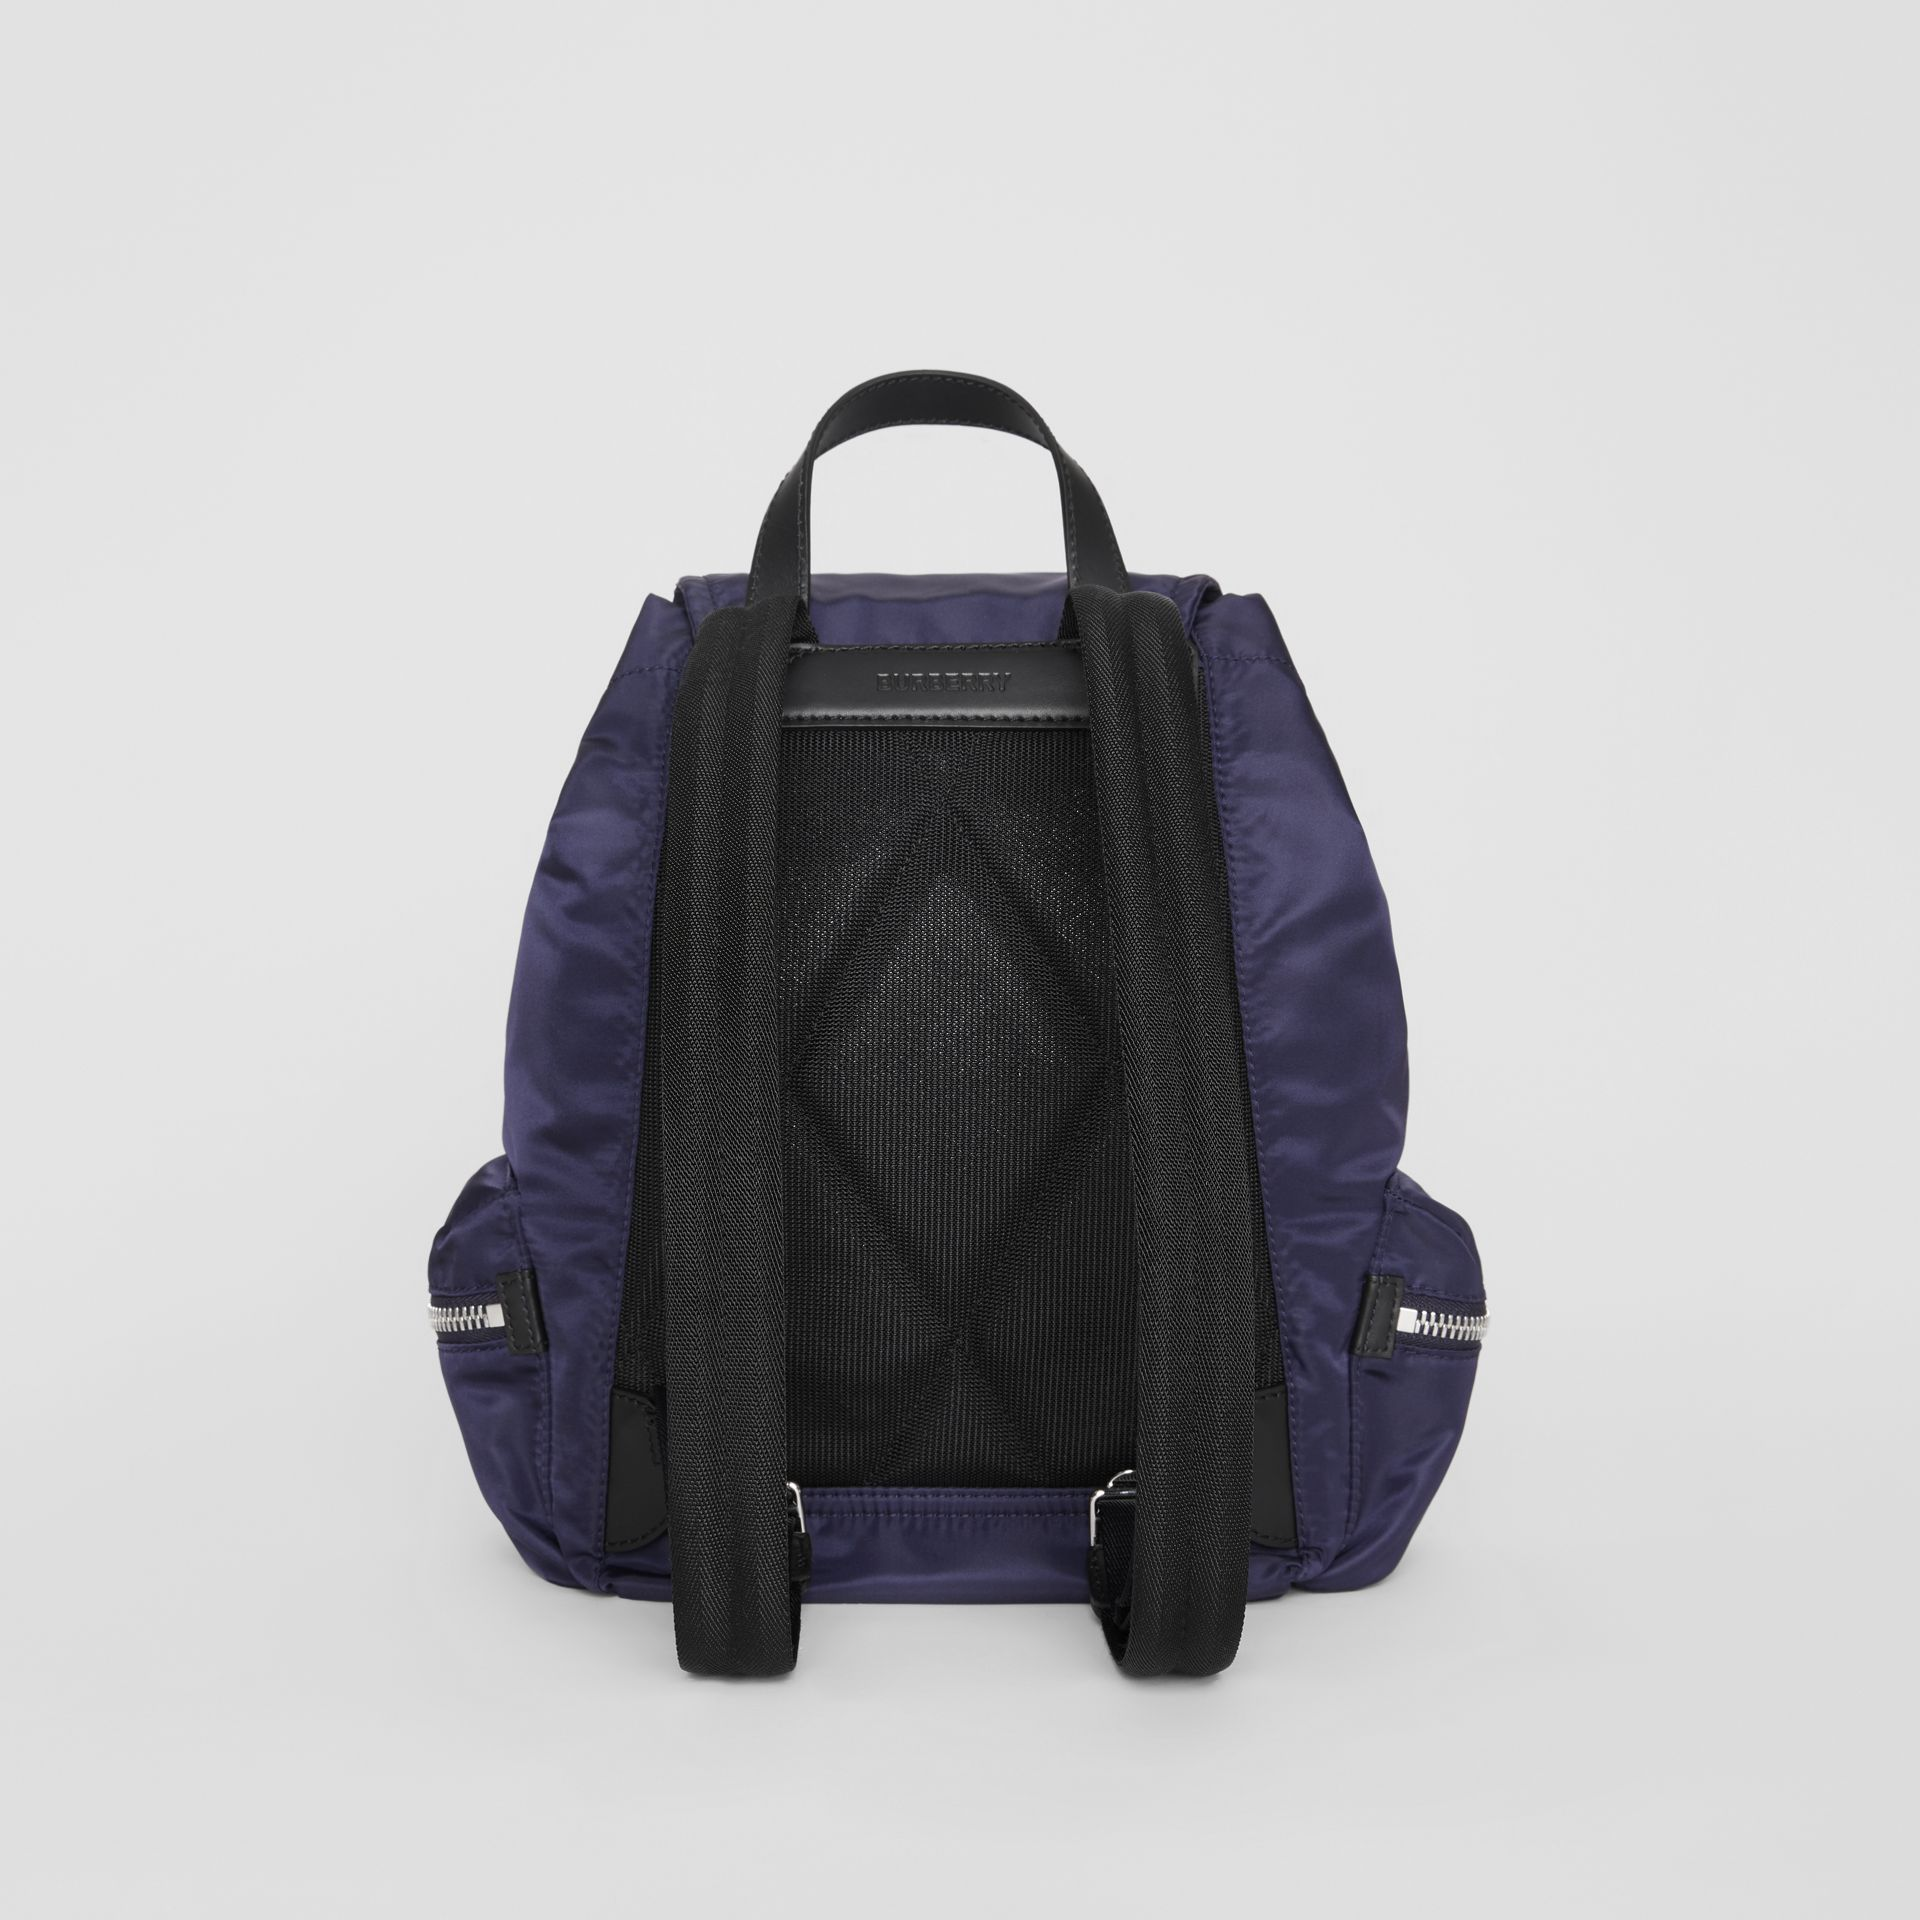 Sac The Rucksack moyen en nylon avec logo (Bleu Marine) - Femme | Burberry - photo de la galerie 7